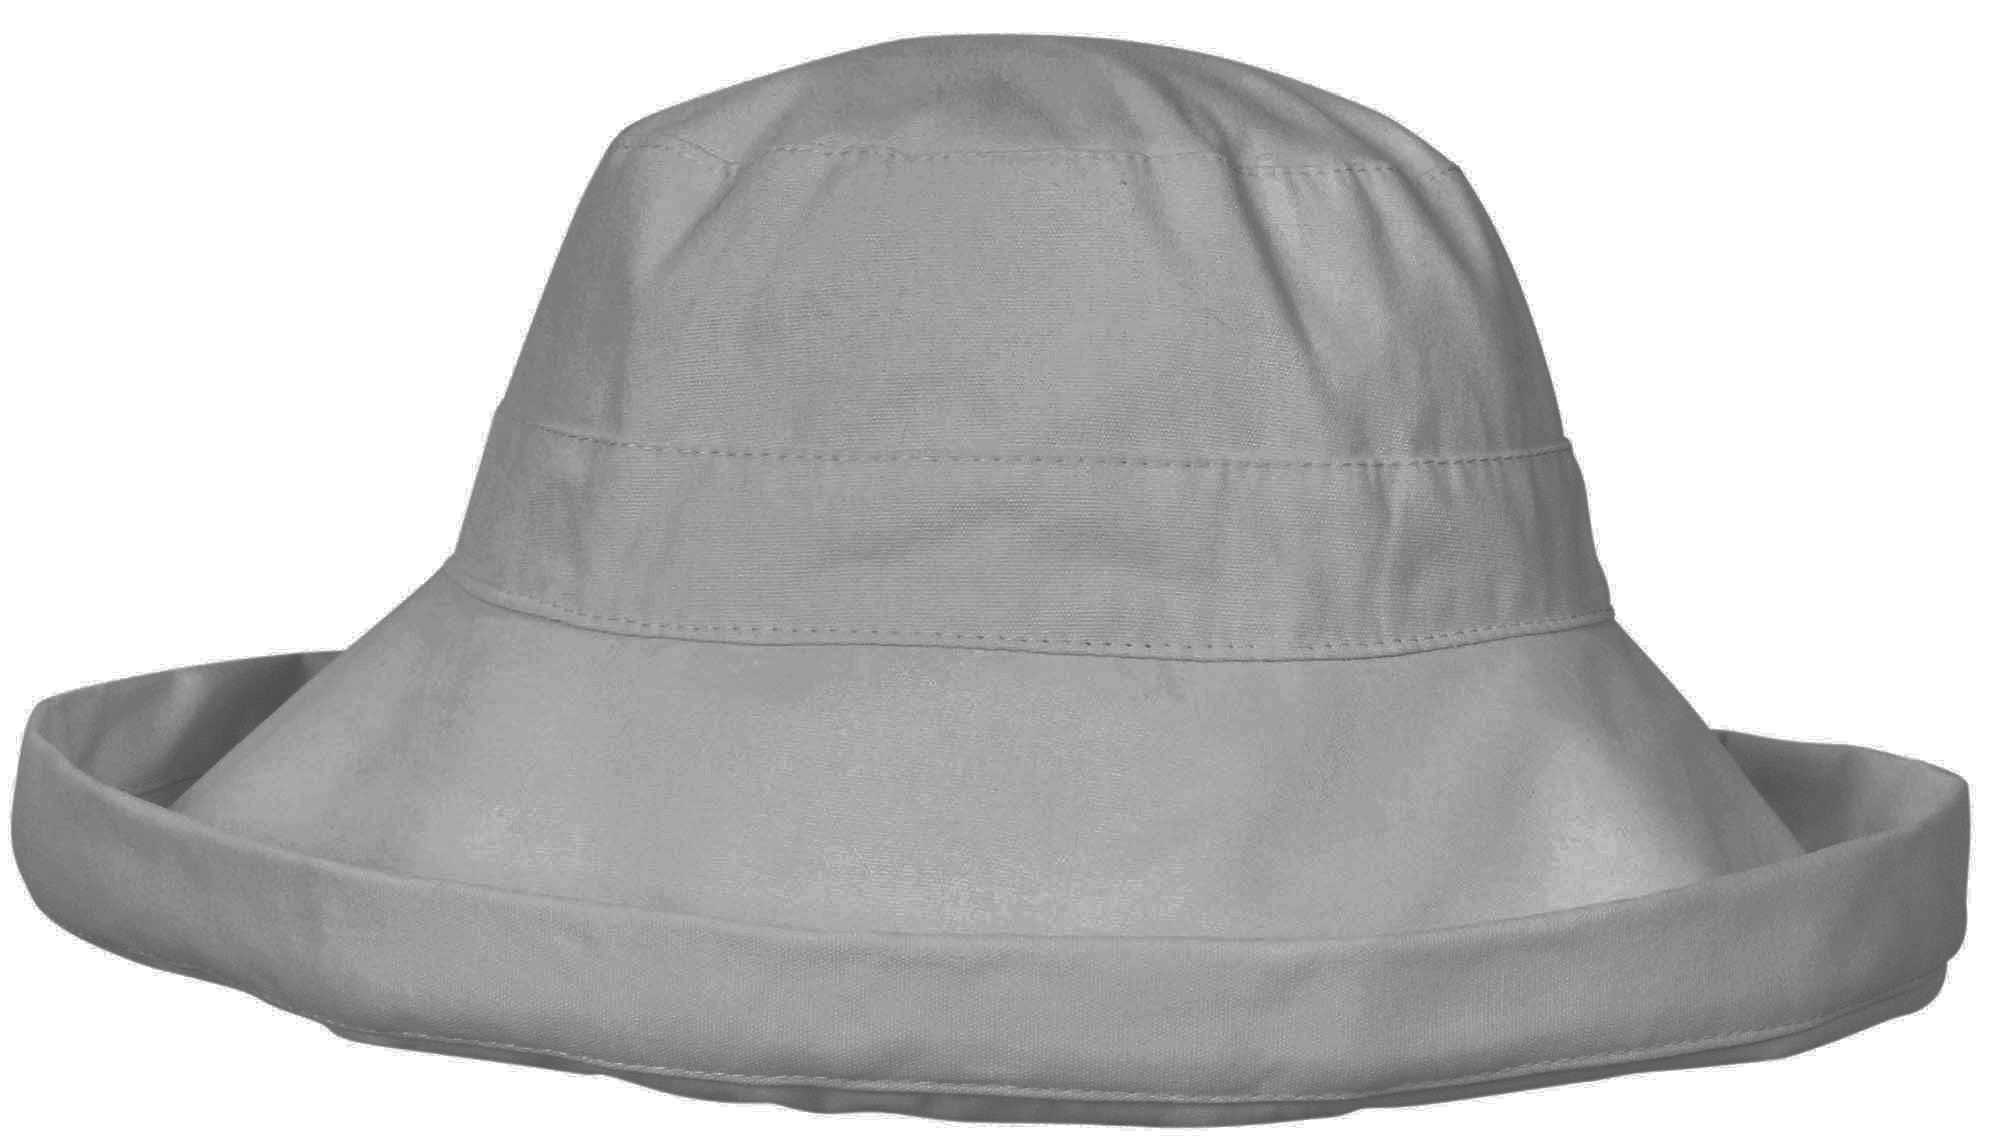 Lullaby Women UPF50+ Summer Beach Hat Wide Brim Foldable Sun Bucket Hat Grey